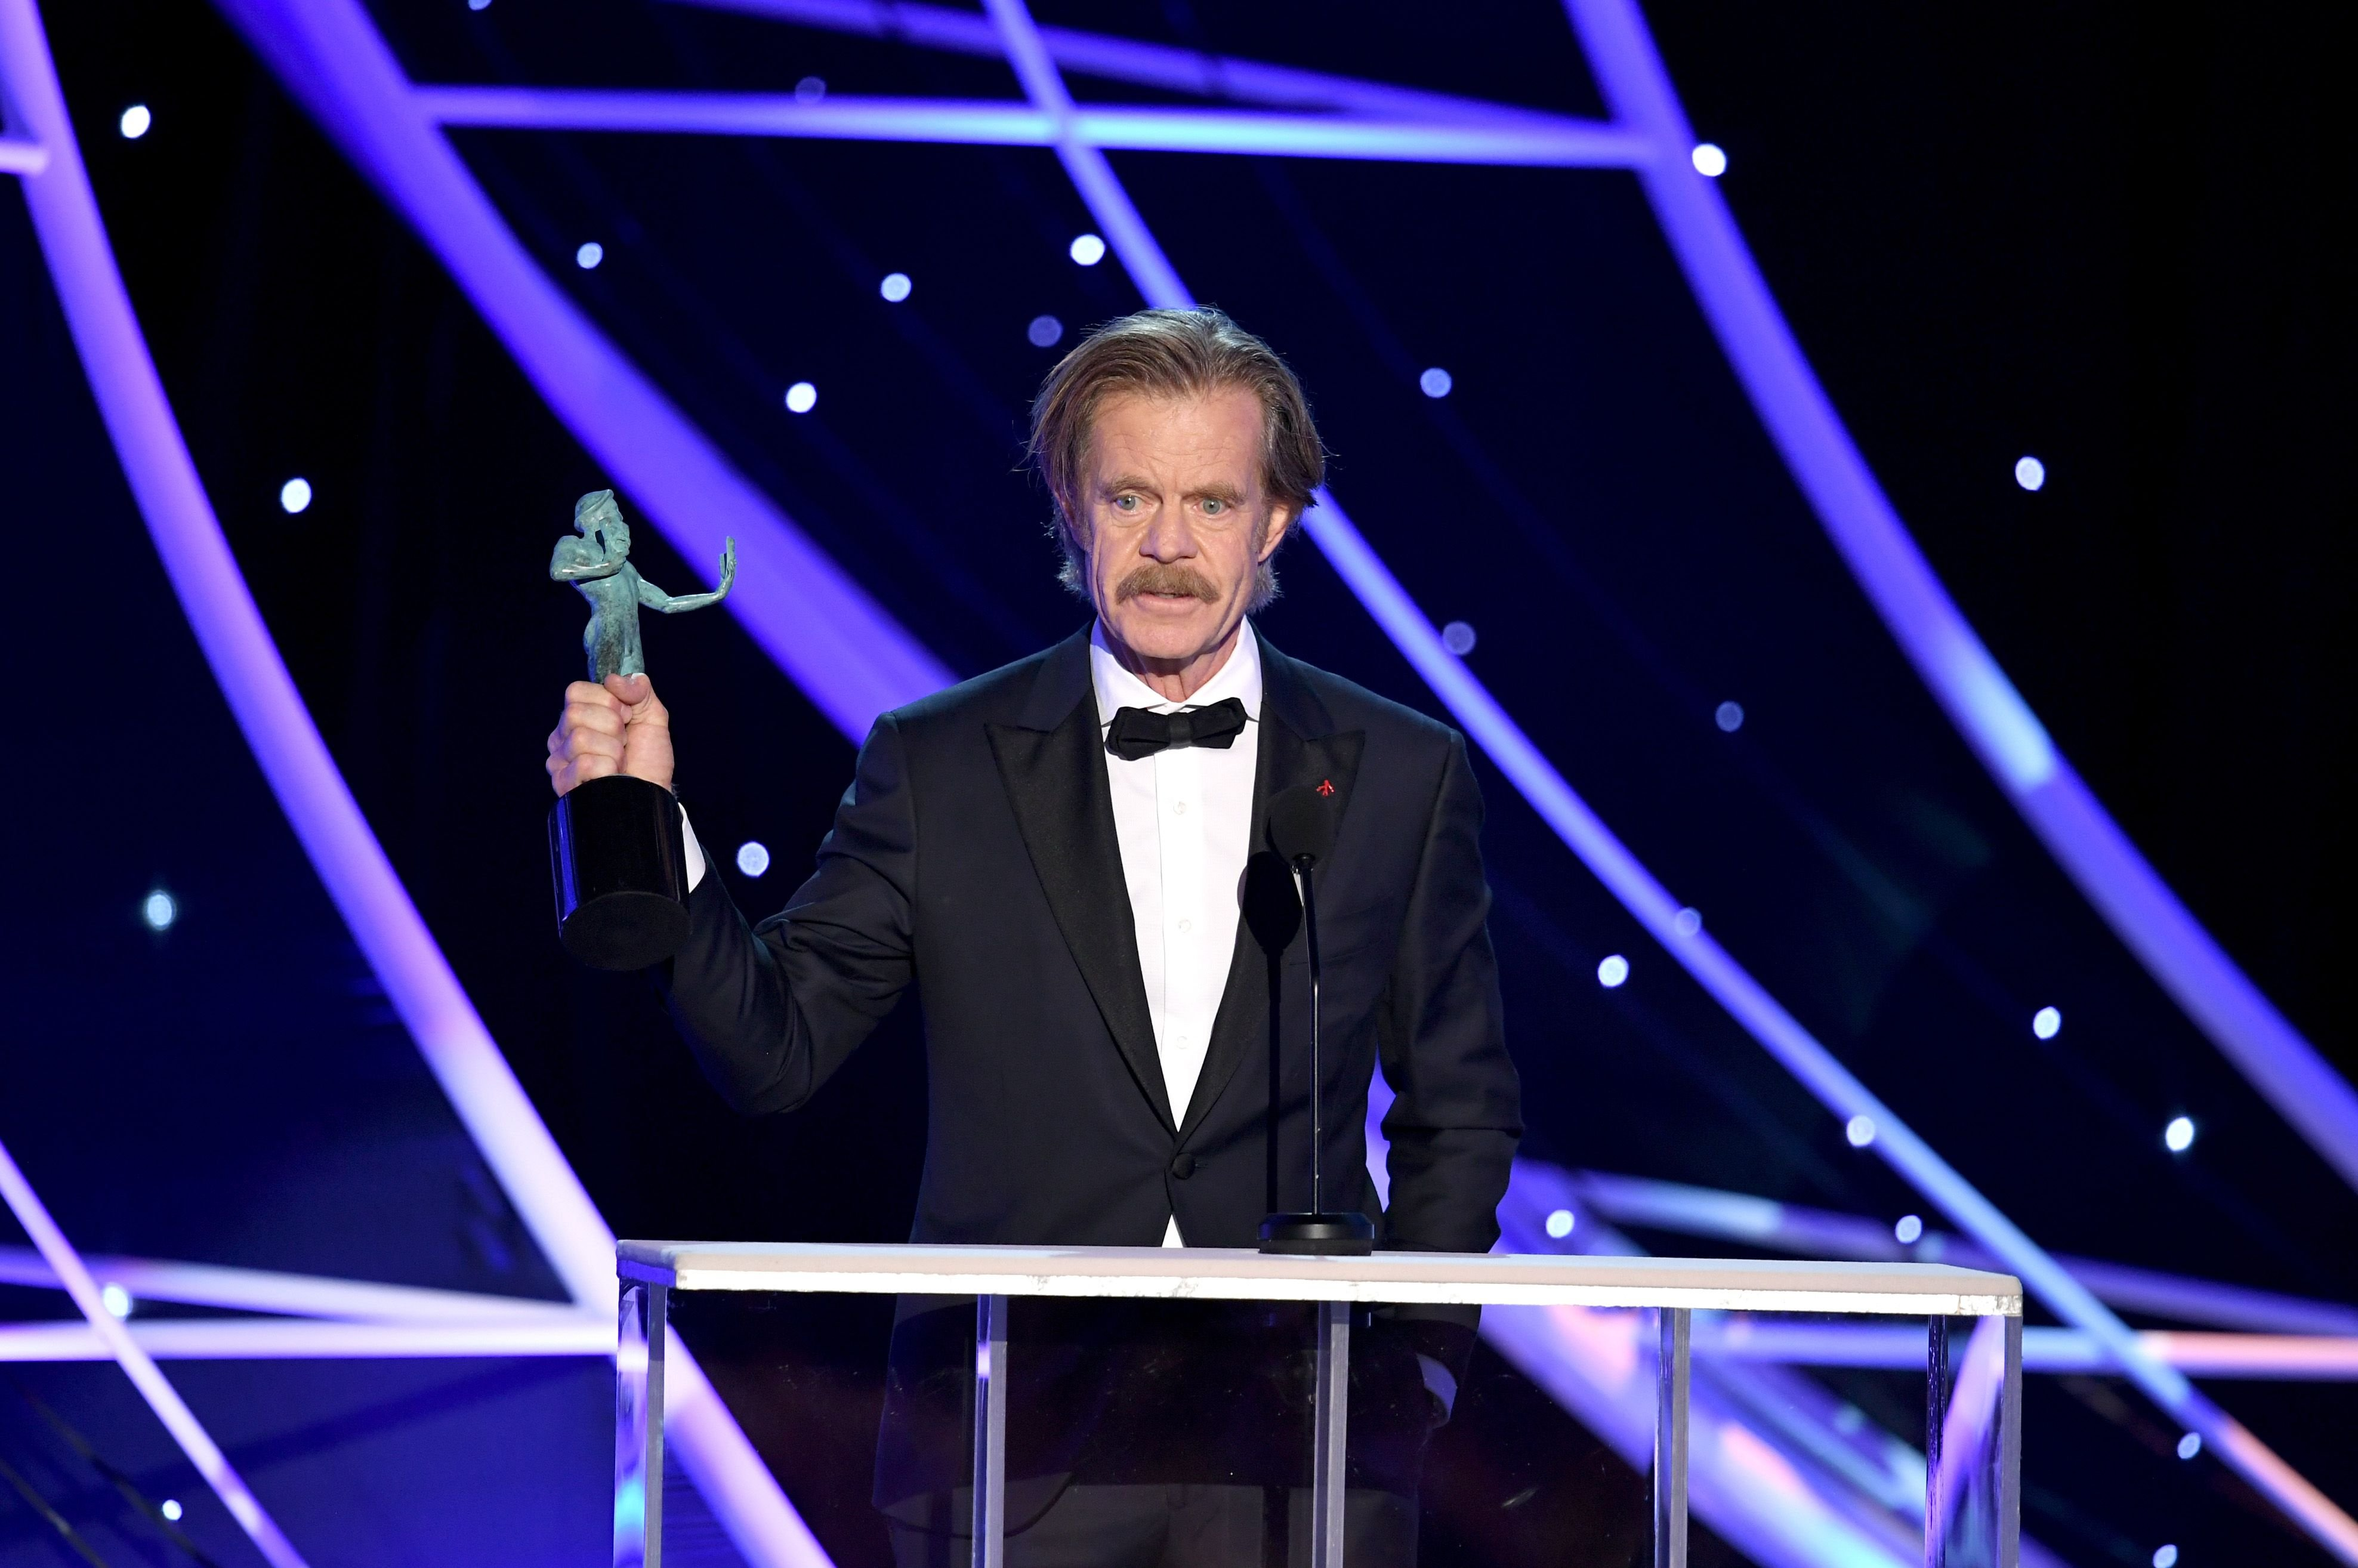 William H. Macy at the 24th Annual Screen Actors Guild Awards  / Getty Images